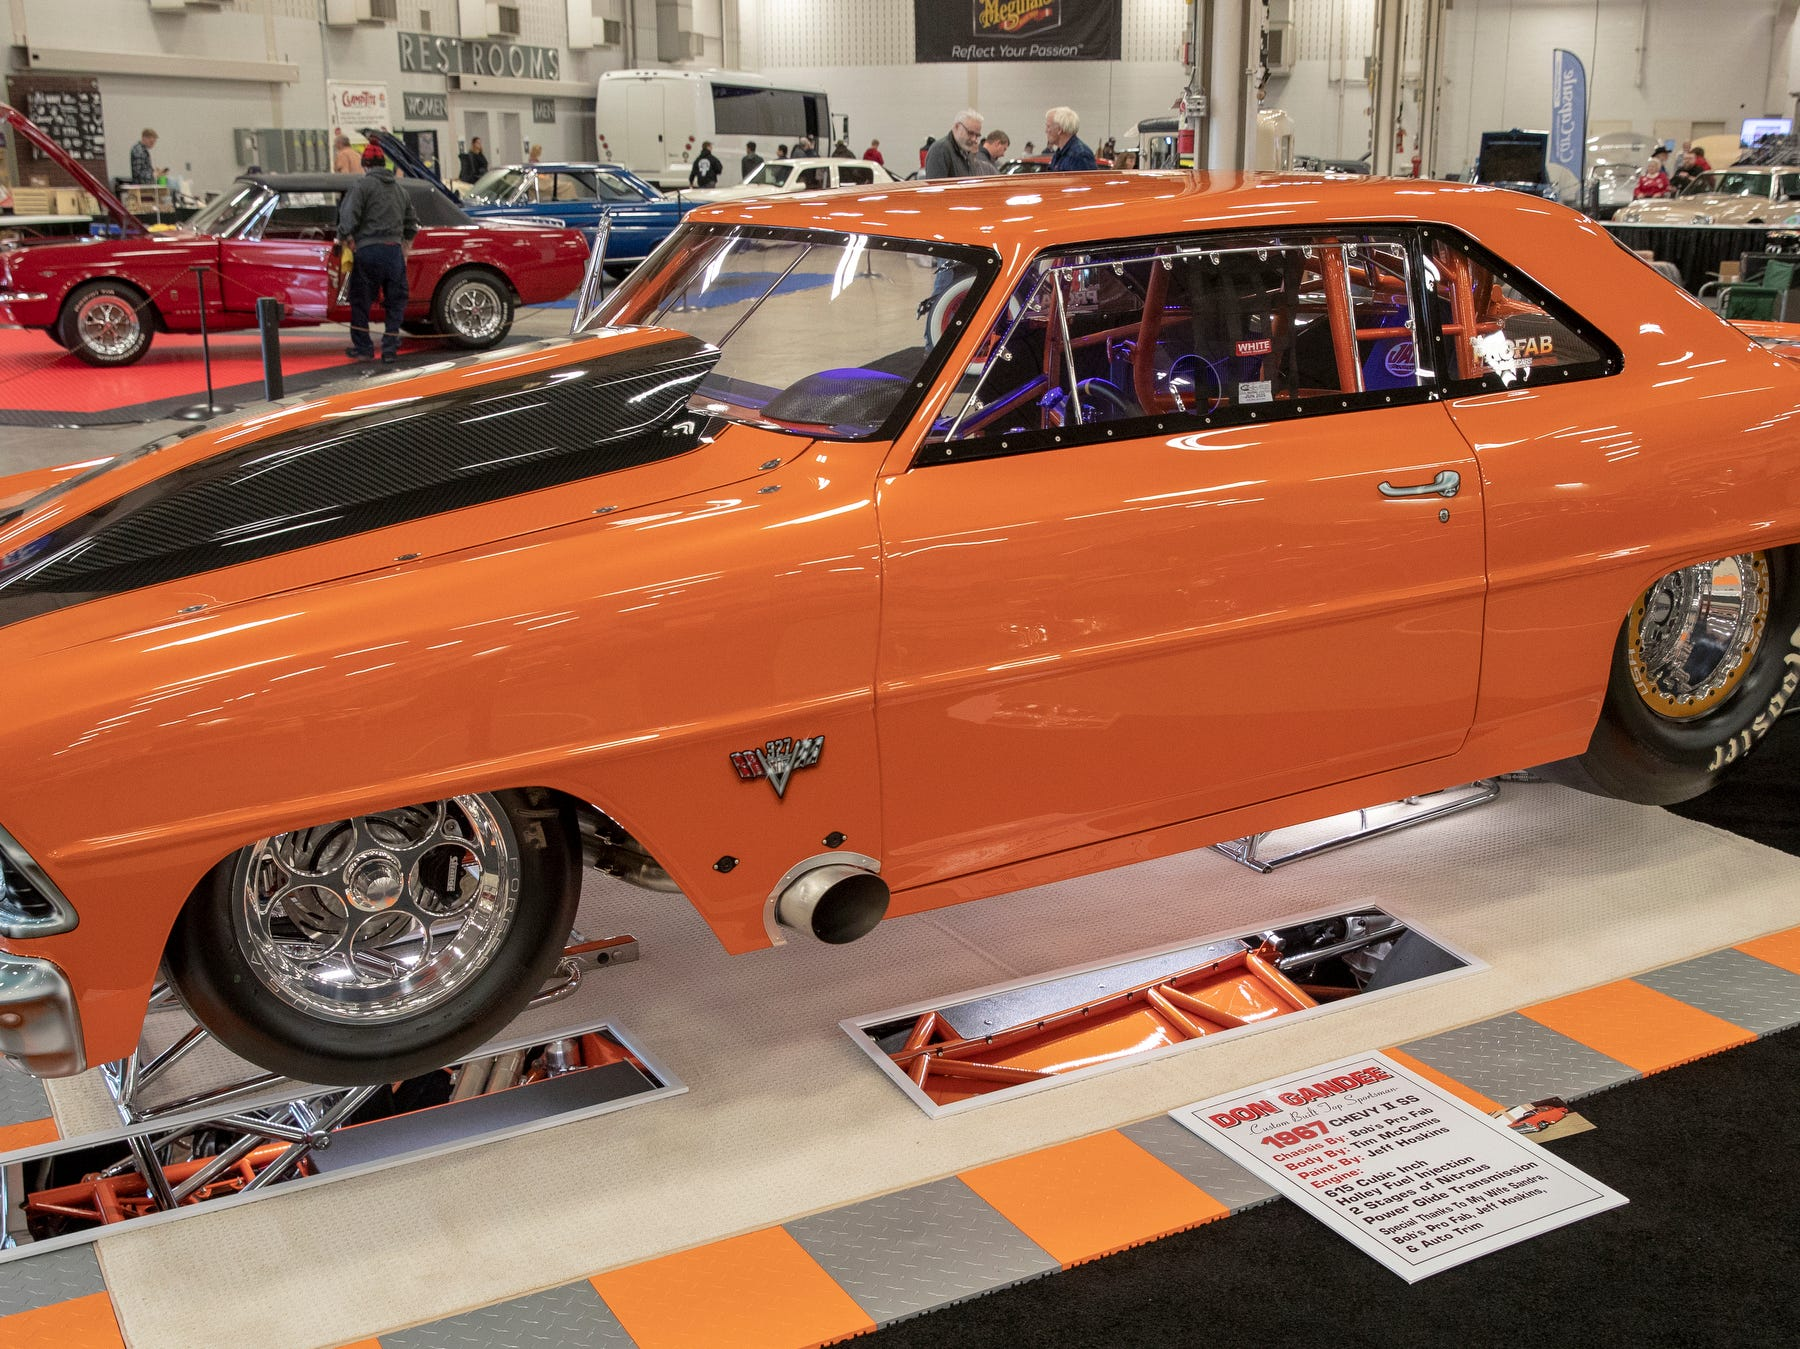 A 1967 Nova SS, at World of Wheels at the Indiana State Fairgrounds, Indianapolis, Friday, Feb. 8, 2019. The event runs through the weekend and features four big rooms of stock and heavily customized cars.